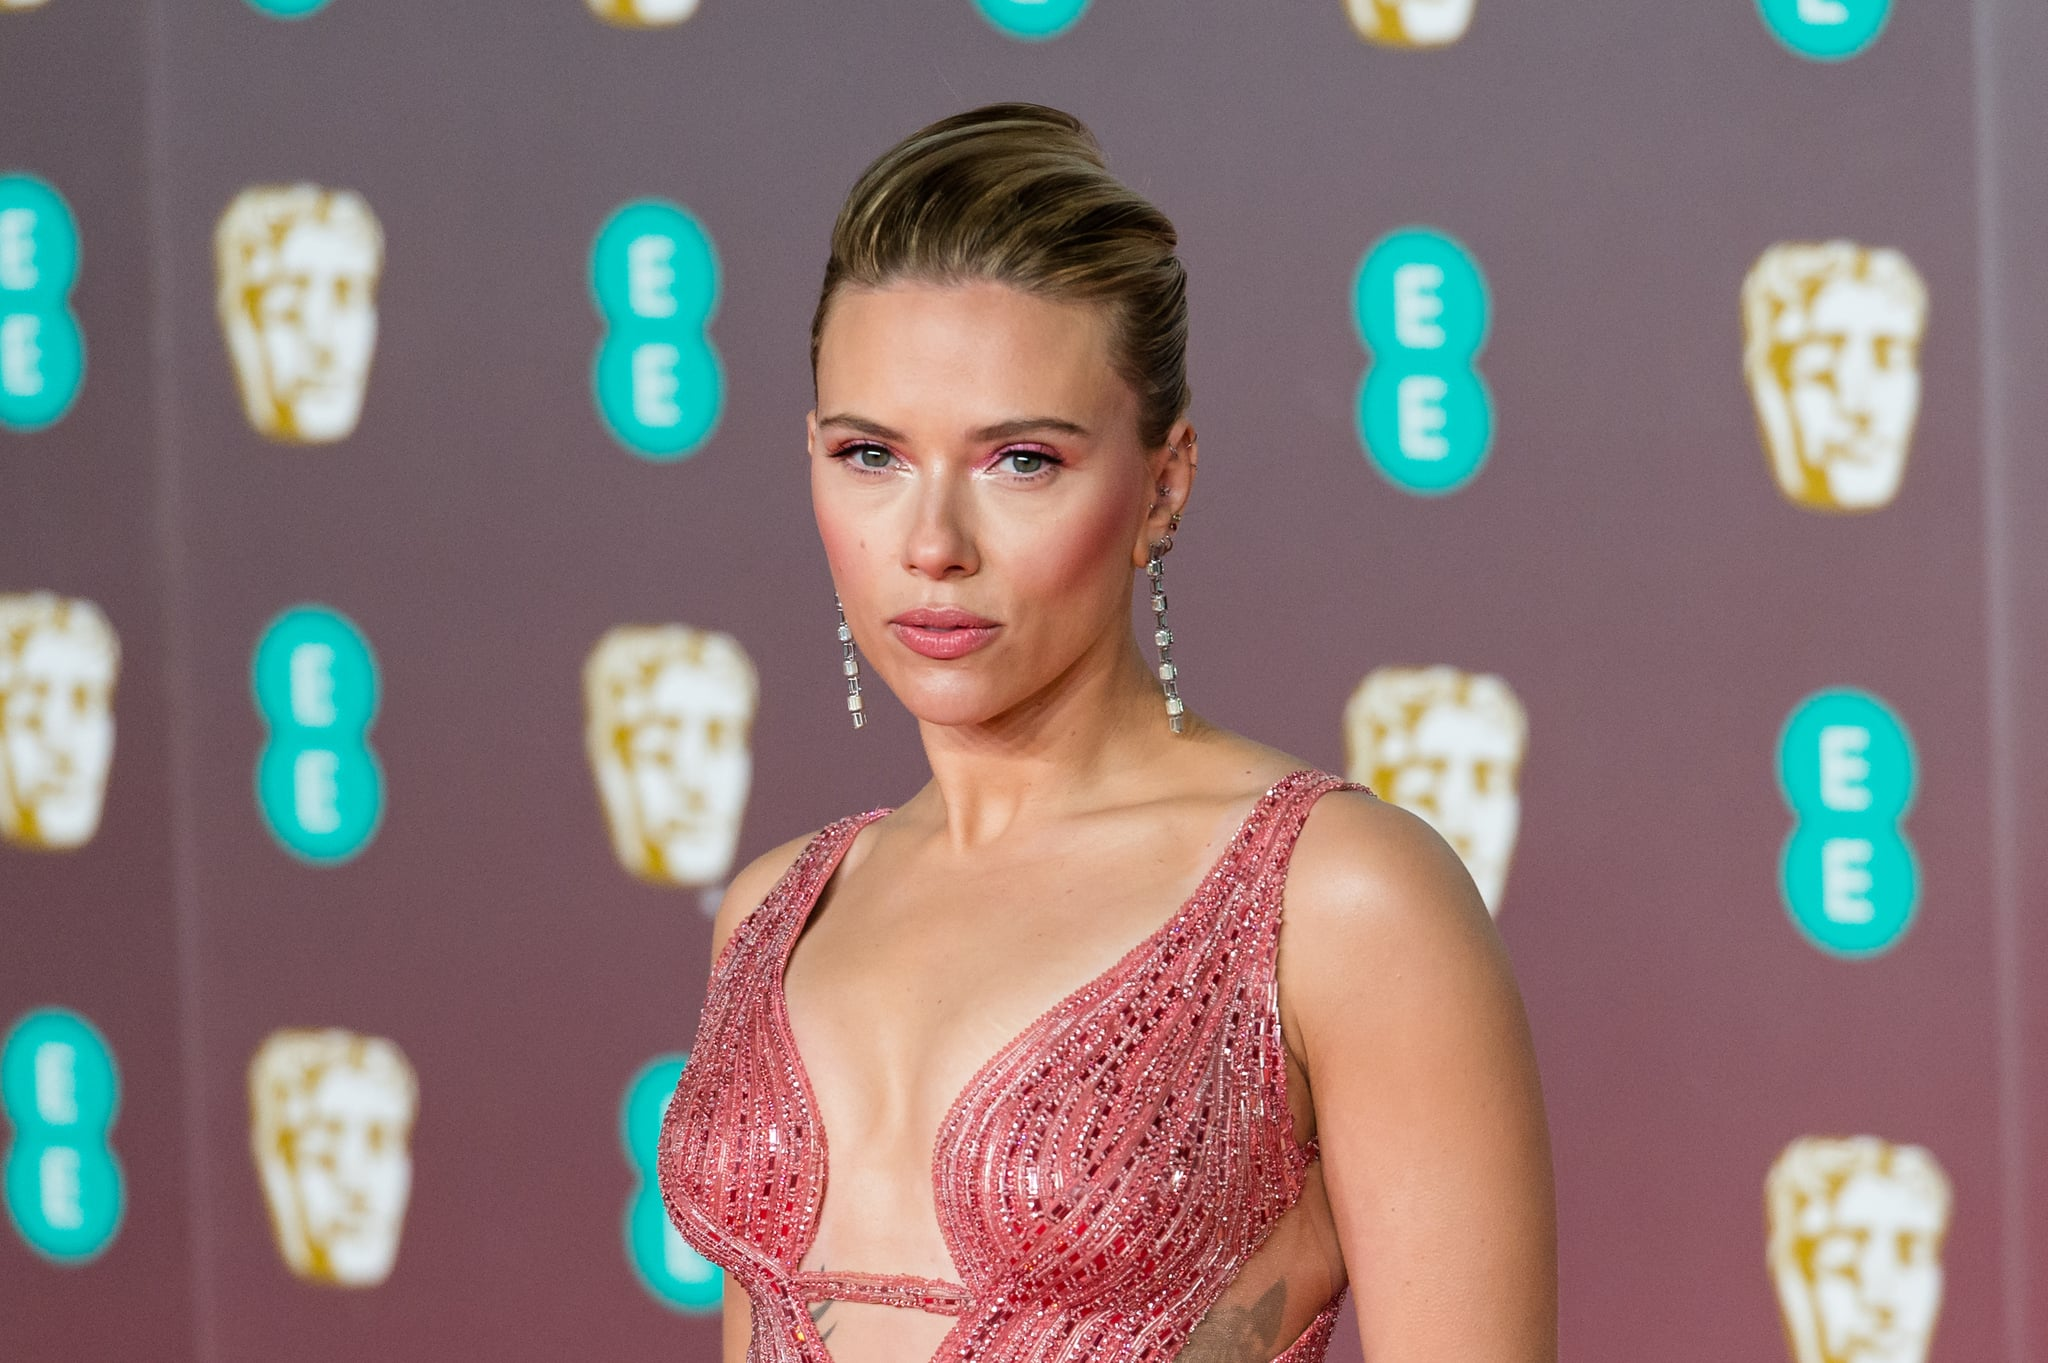 Scarlett Johansson attends the EE British Academy Film Awards ceremony at the Royal Albert Hall on 02 February, 2020 in London, England. (Photo by WIktor Szymanowicz/NurPhoto via Getty Images)